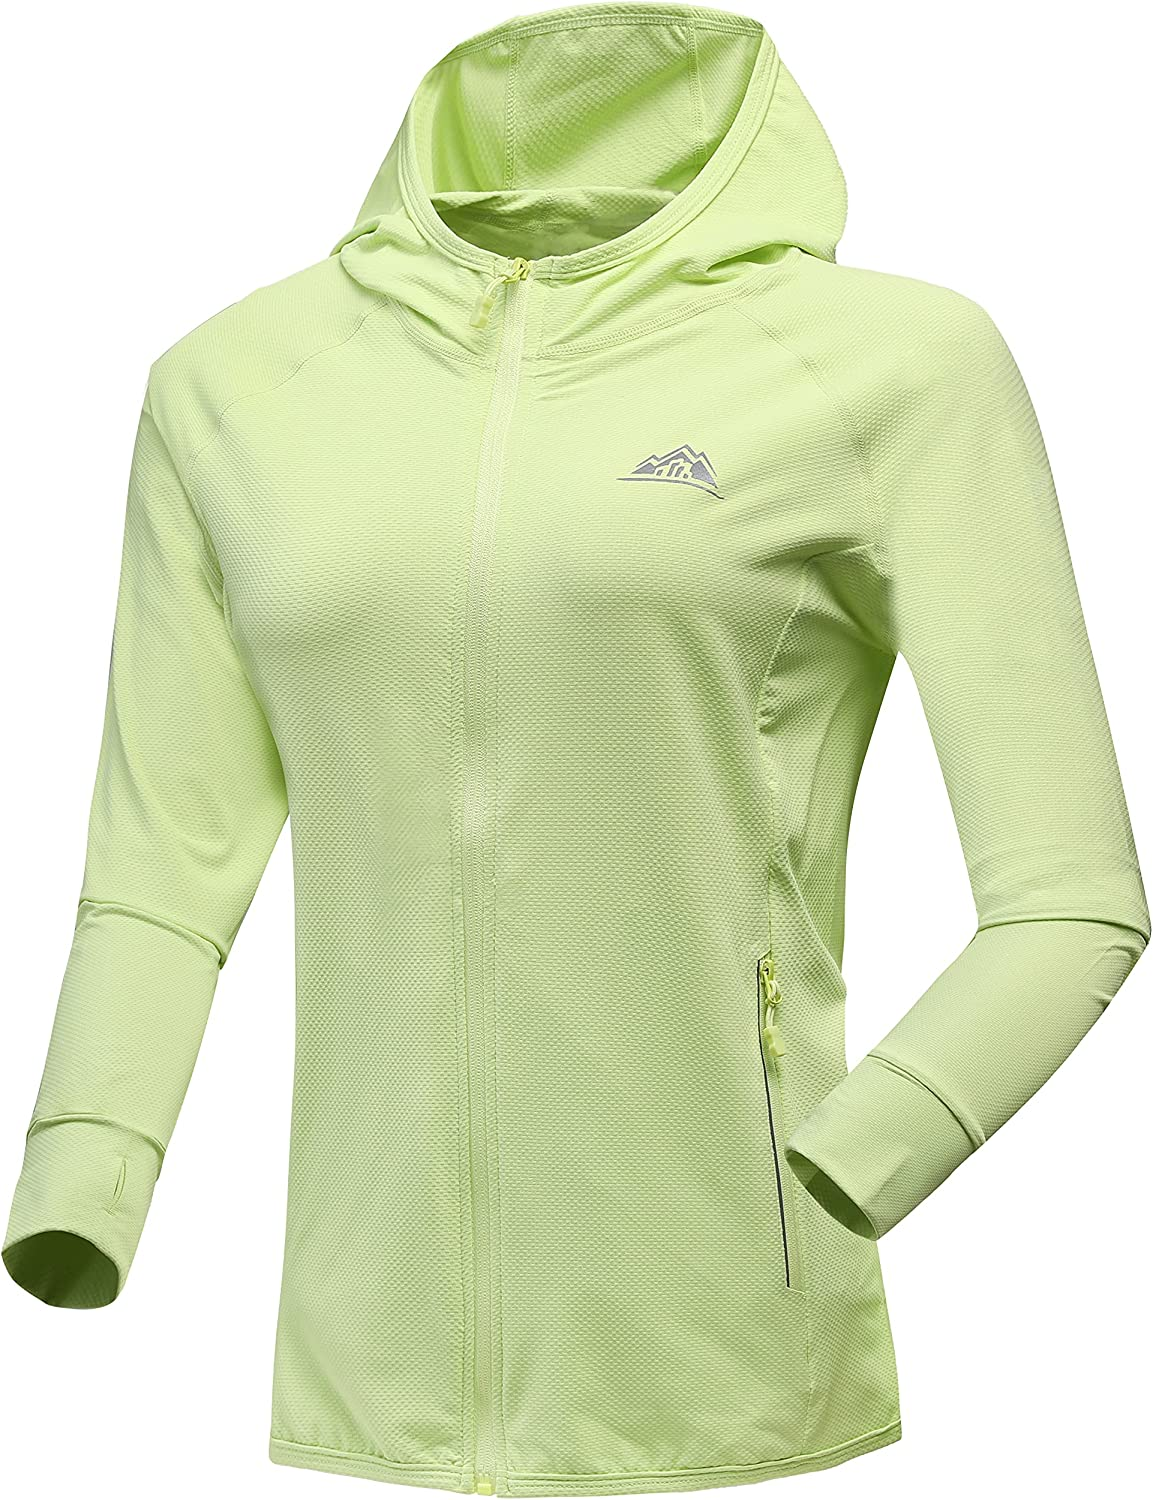 Men's Women's UPF 50+ Sun Long Running Protection Hiking Sleeve Sales Ranking TOP3 results No. 1